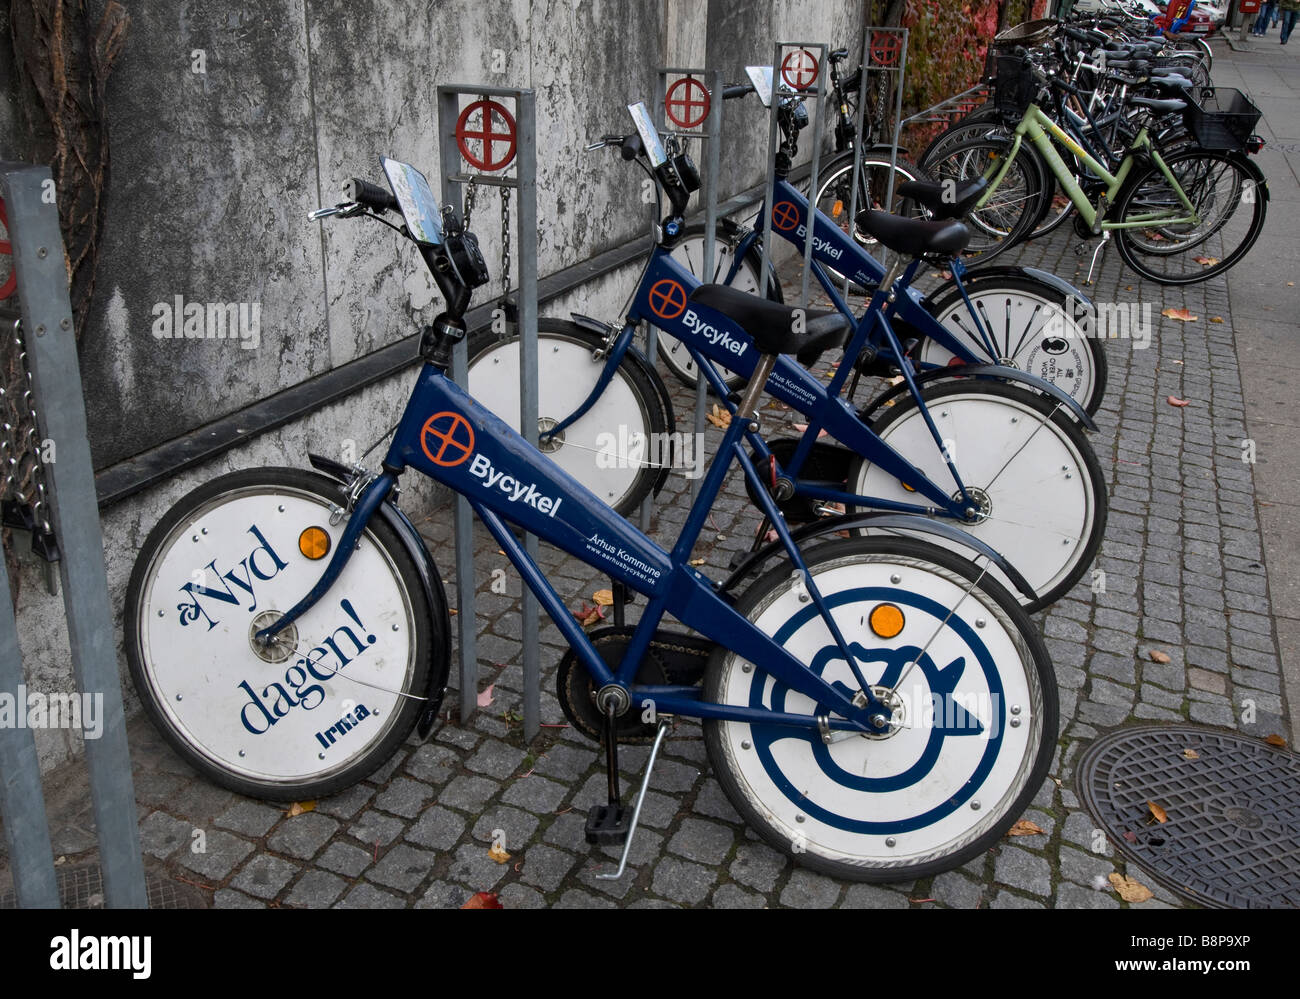 Arhus city bicycles chained and parked for use by citizens as a temporary usage rental scheme, Denmark - Stock Image